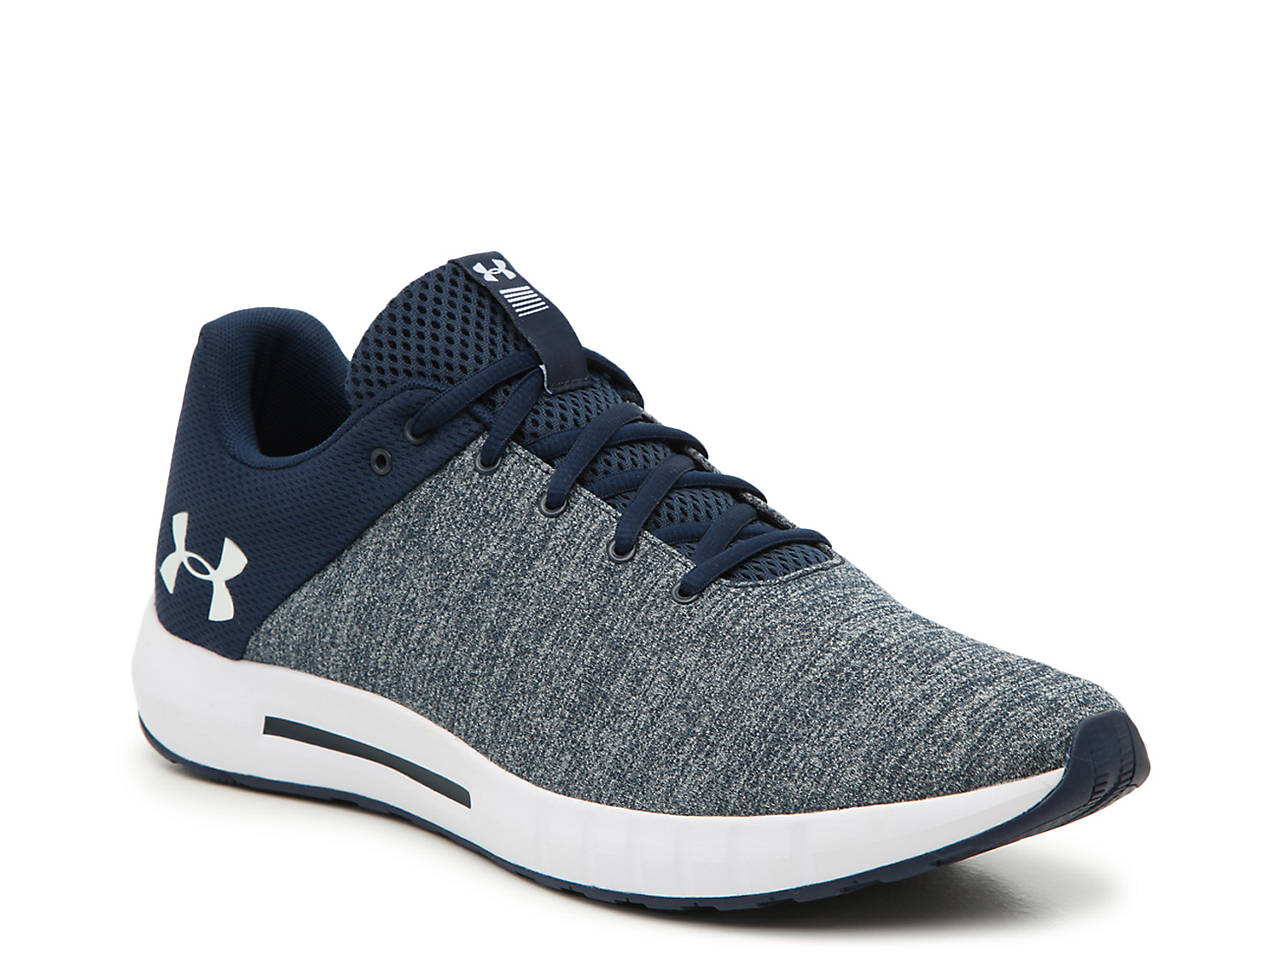 35c13ccab6 Under Armour Micro G Pursuit Twist Lightweight Running Shoe - Men s ...